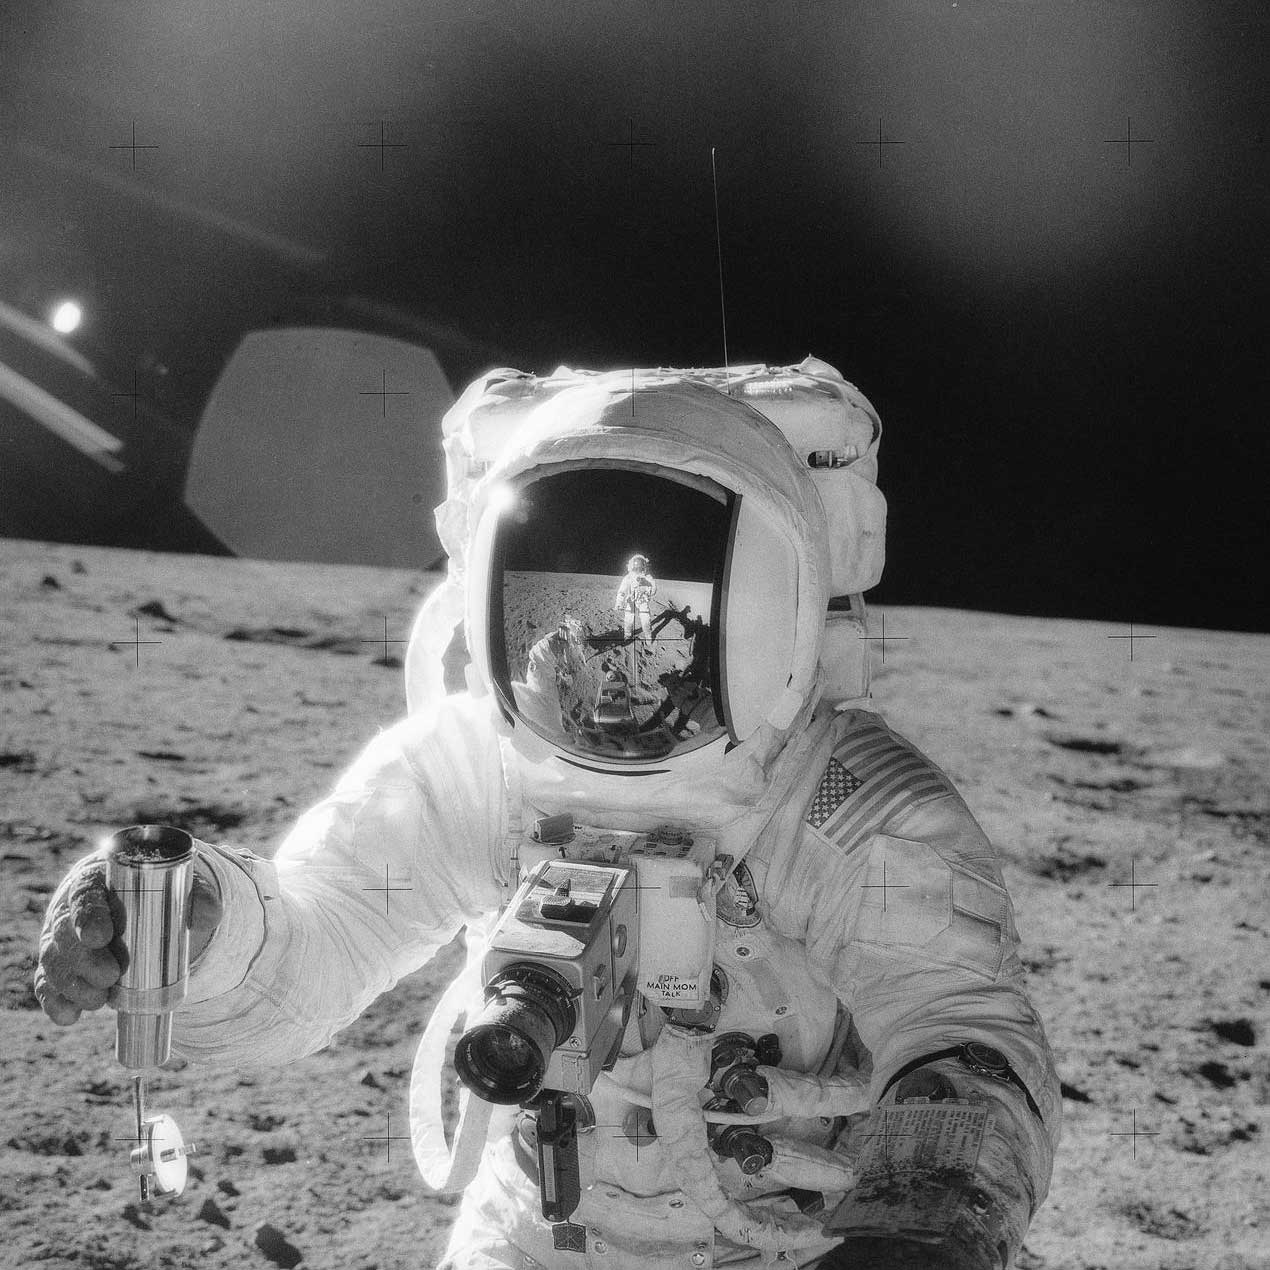 Bean, photographed on the moon by Conrad with his 105.012 on his left wrist